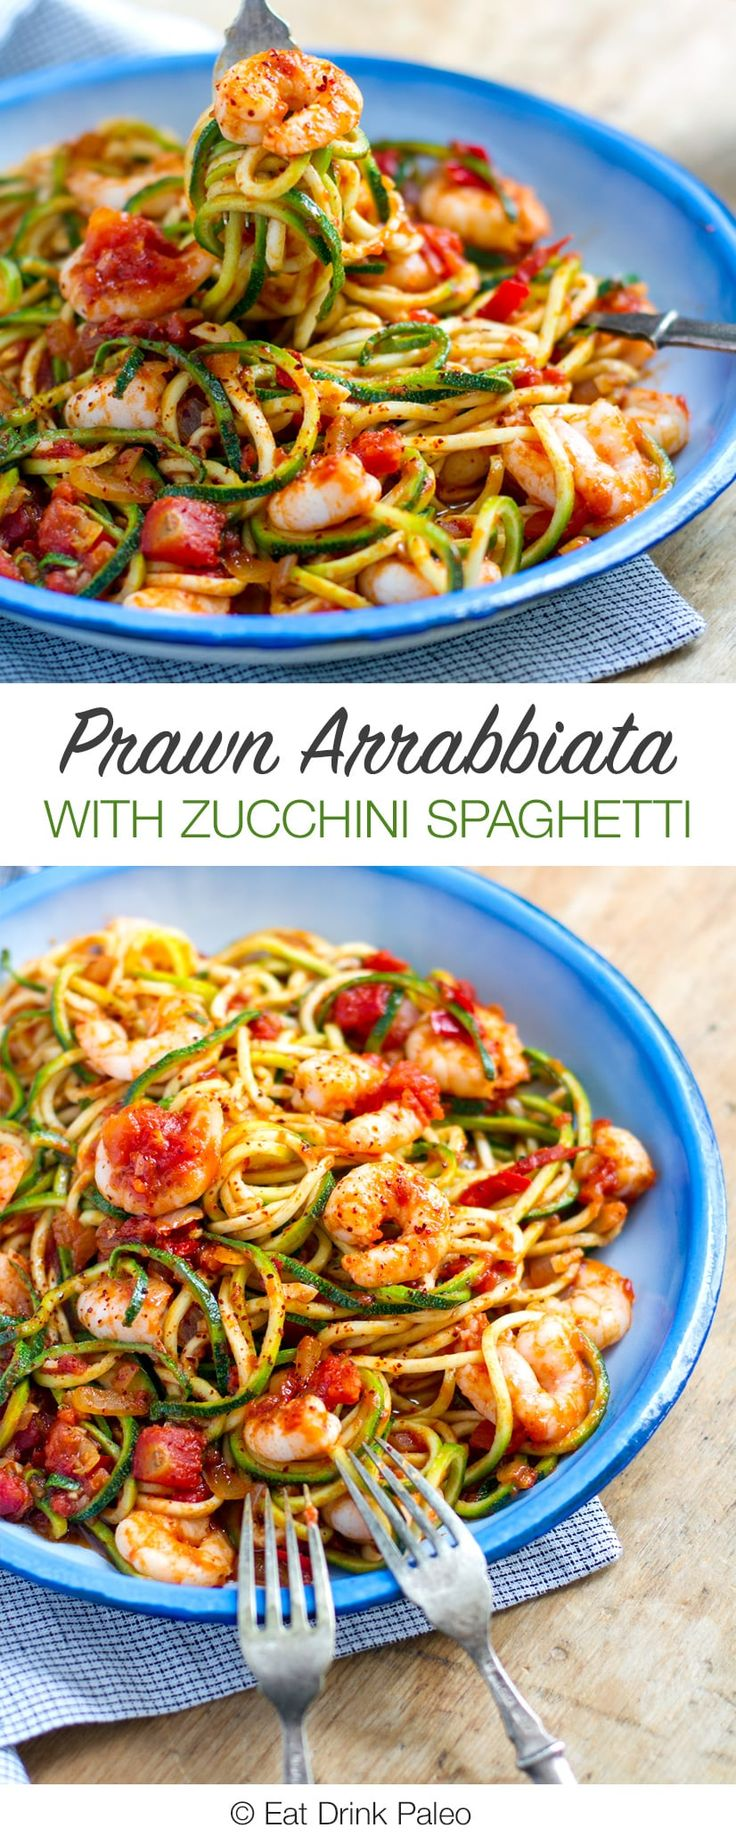 Prawn Arrabbiata With Zucchini Spaghetti - paleo, grain and gluten free, low carb, very nutritious and tasty. Recipe via http://eatdrinkpaleo.com.au/zucchini-spaghetti-recipe-prawn-arrabbiata/